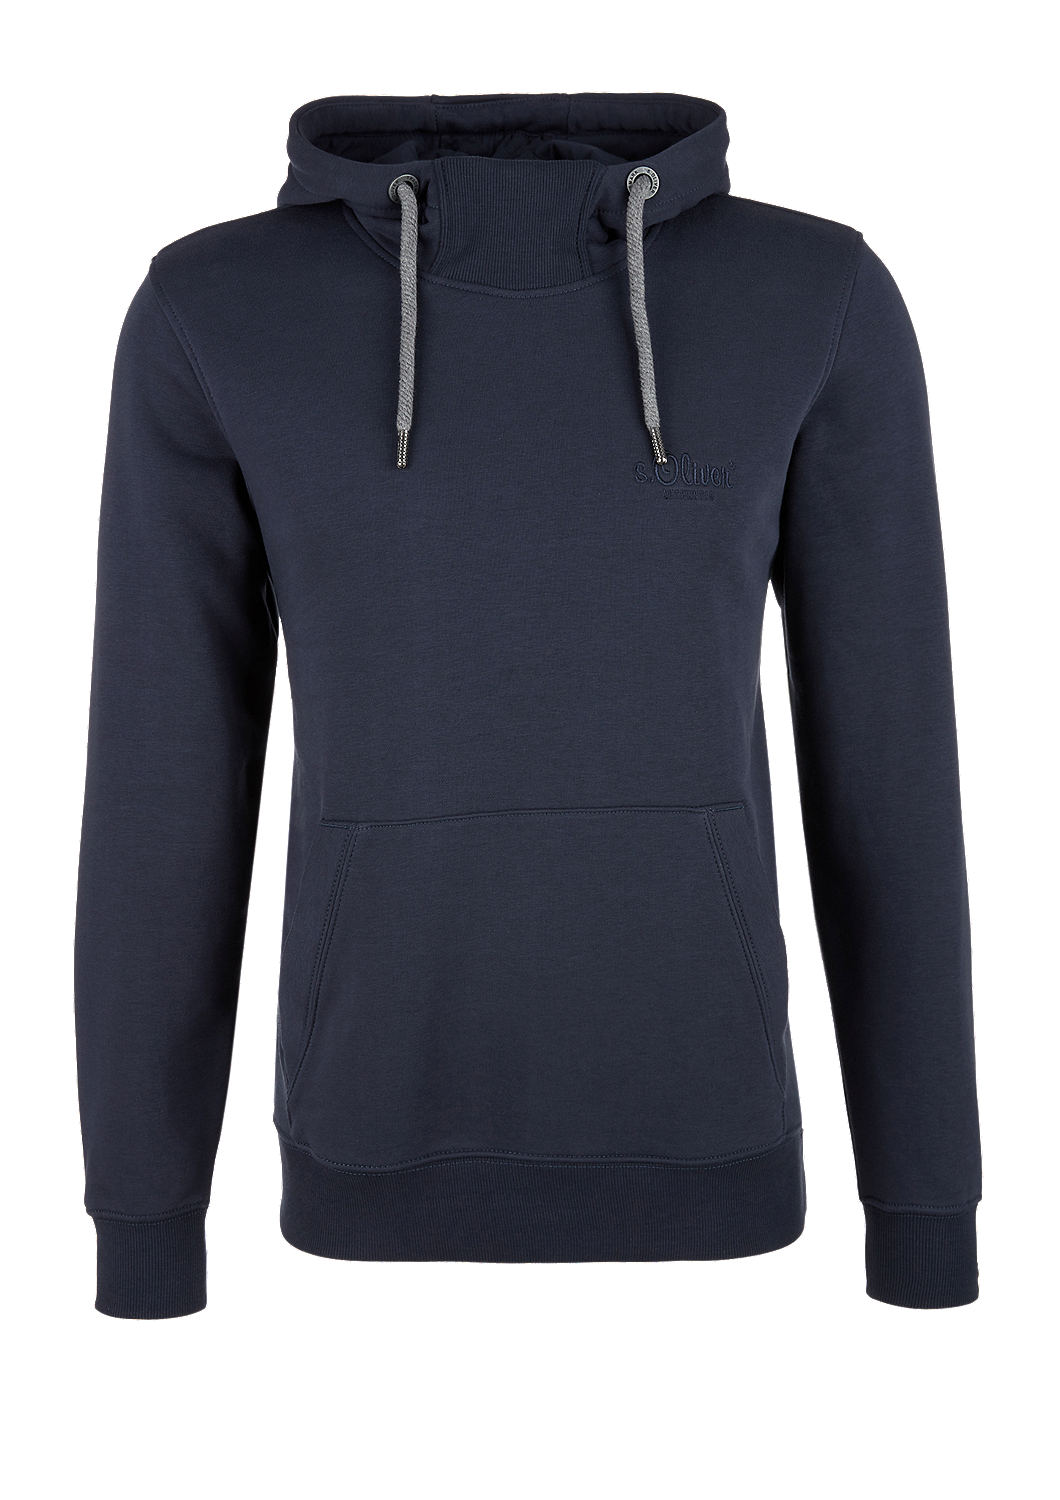 s.Oliver - s.Oliver AUTHENTIC Hoodie - 4